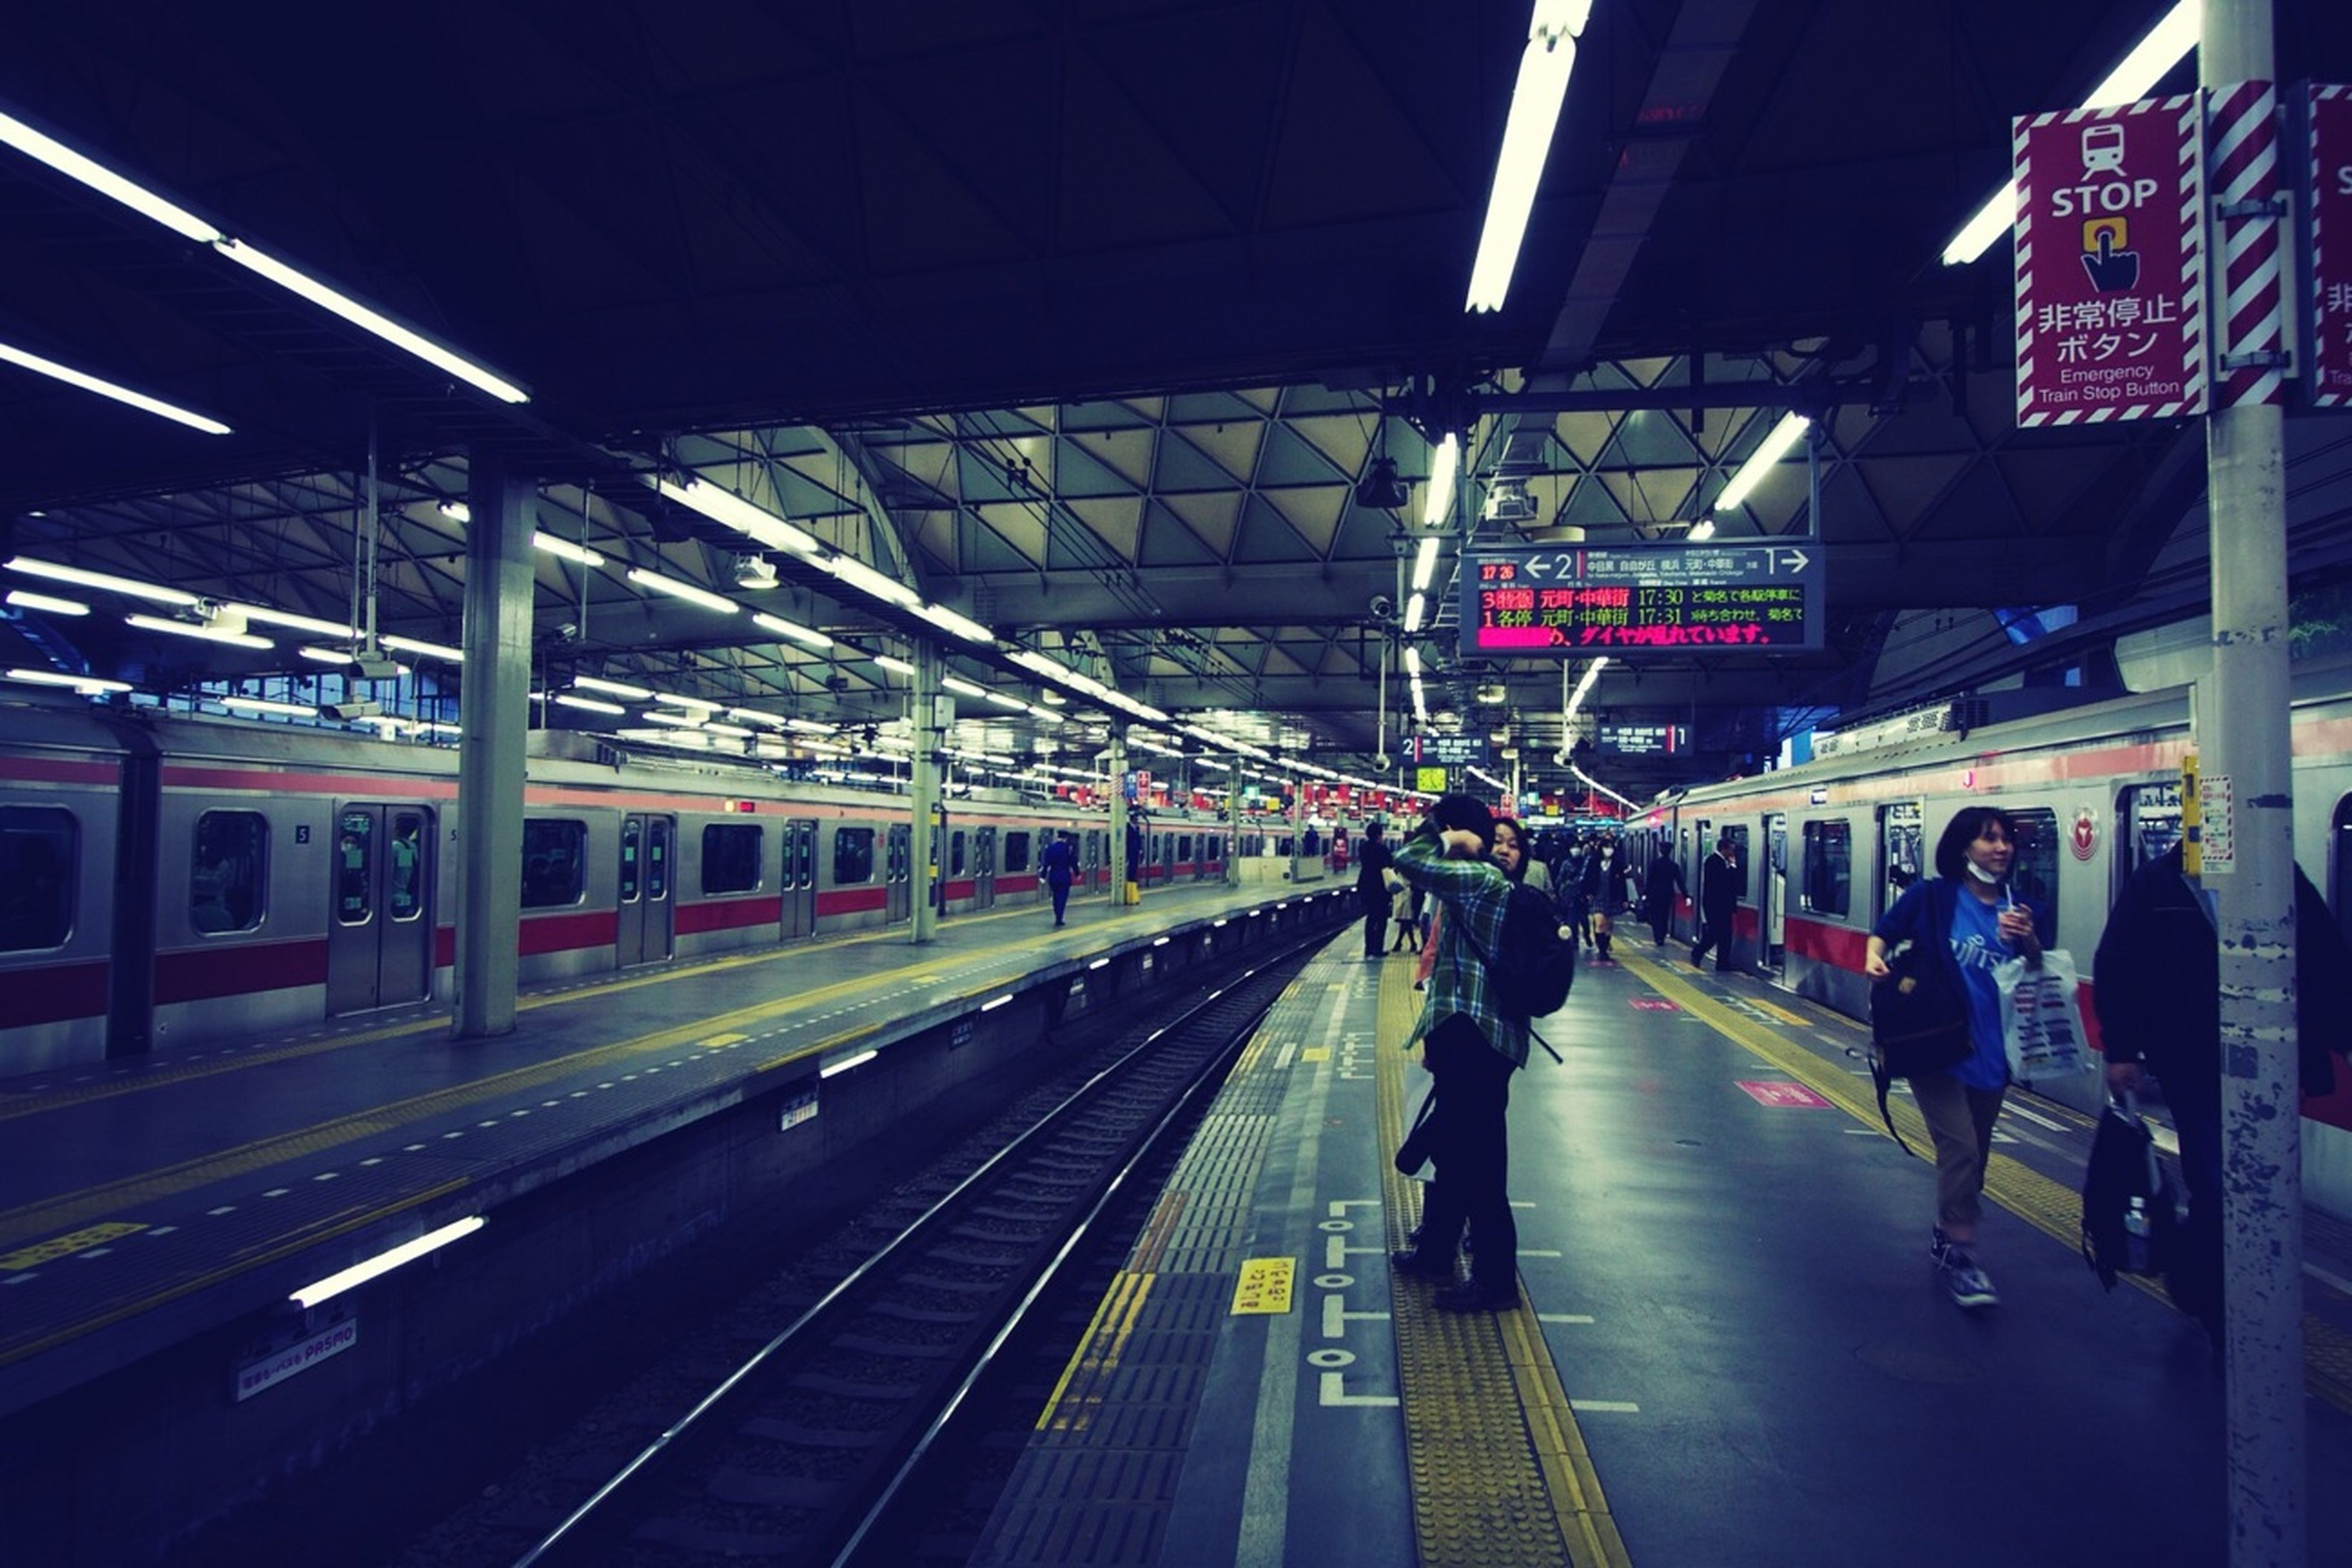 transportation, indoors, railroad station, railroad station platform, public transportation, rail transportation, railroad track, ceiling, men, subway station, illuminated, travel, built structure, architecture, transportation building - type of building, mode of transport, incidental people, person, subway